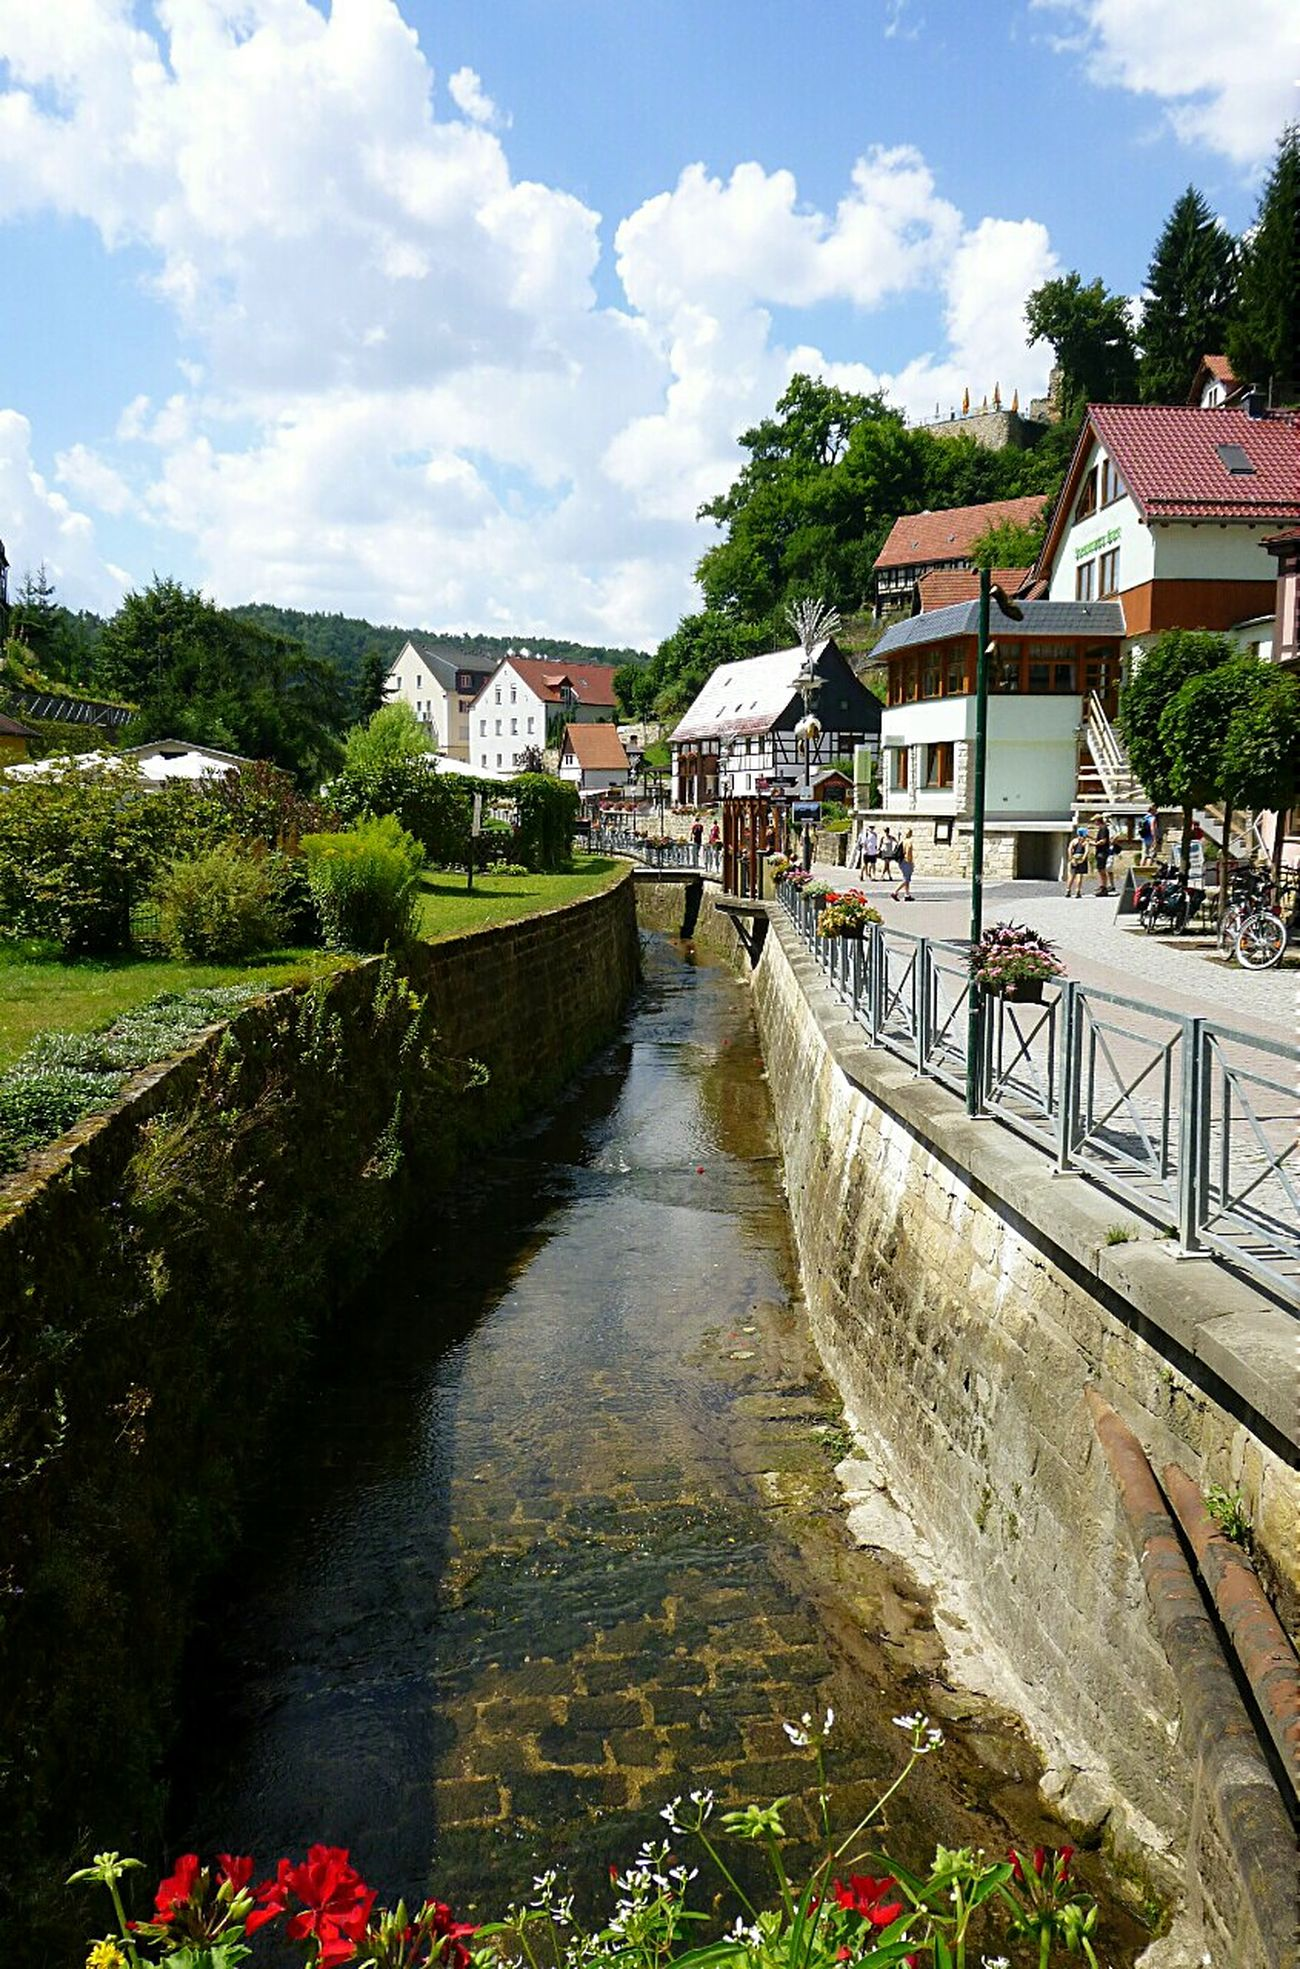 Kurort Rathen Village Germany Streetphotography EyeEm Eyemphotography Street Trip Nationalpark River Enjoying The Sights Sightseeing